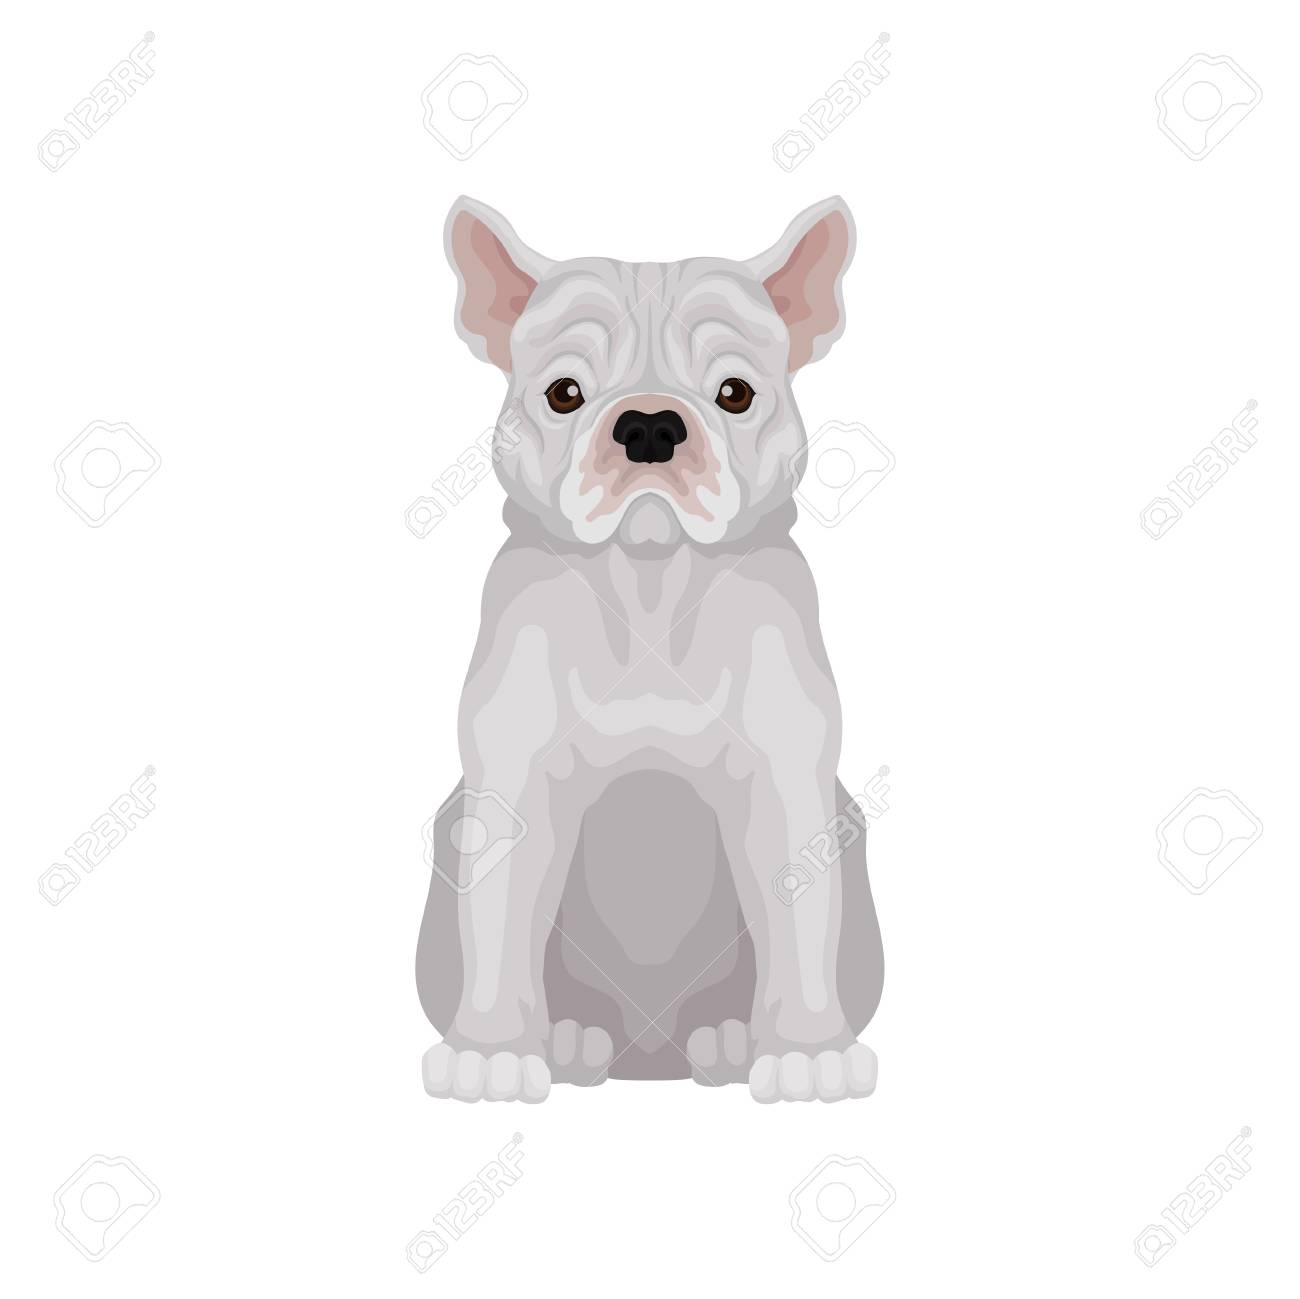 Adorable sitting french bulldog  Small breed of domestic dog